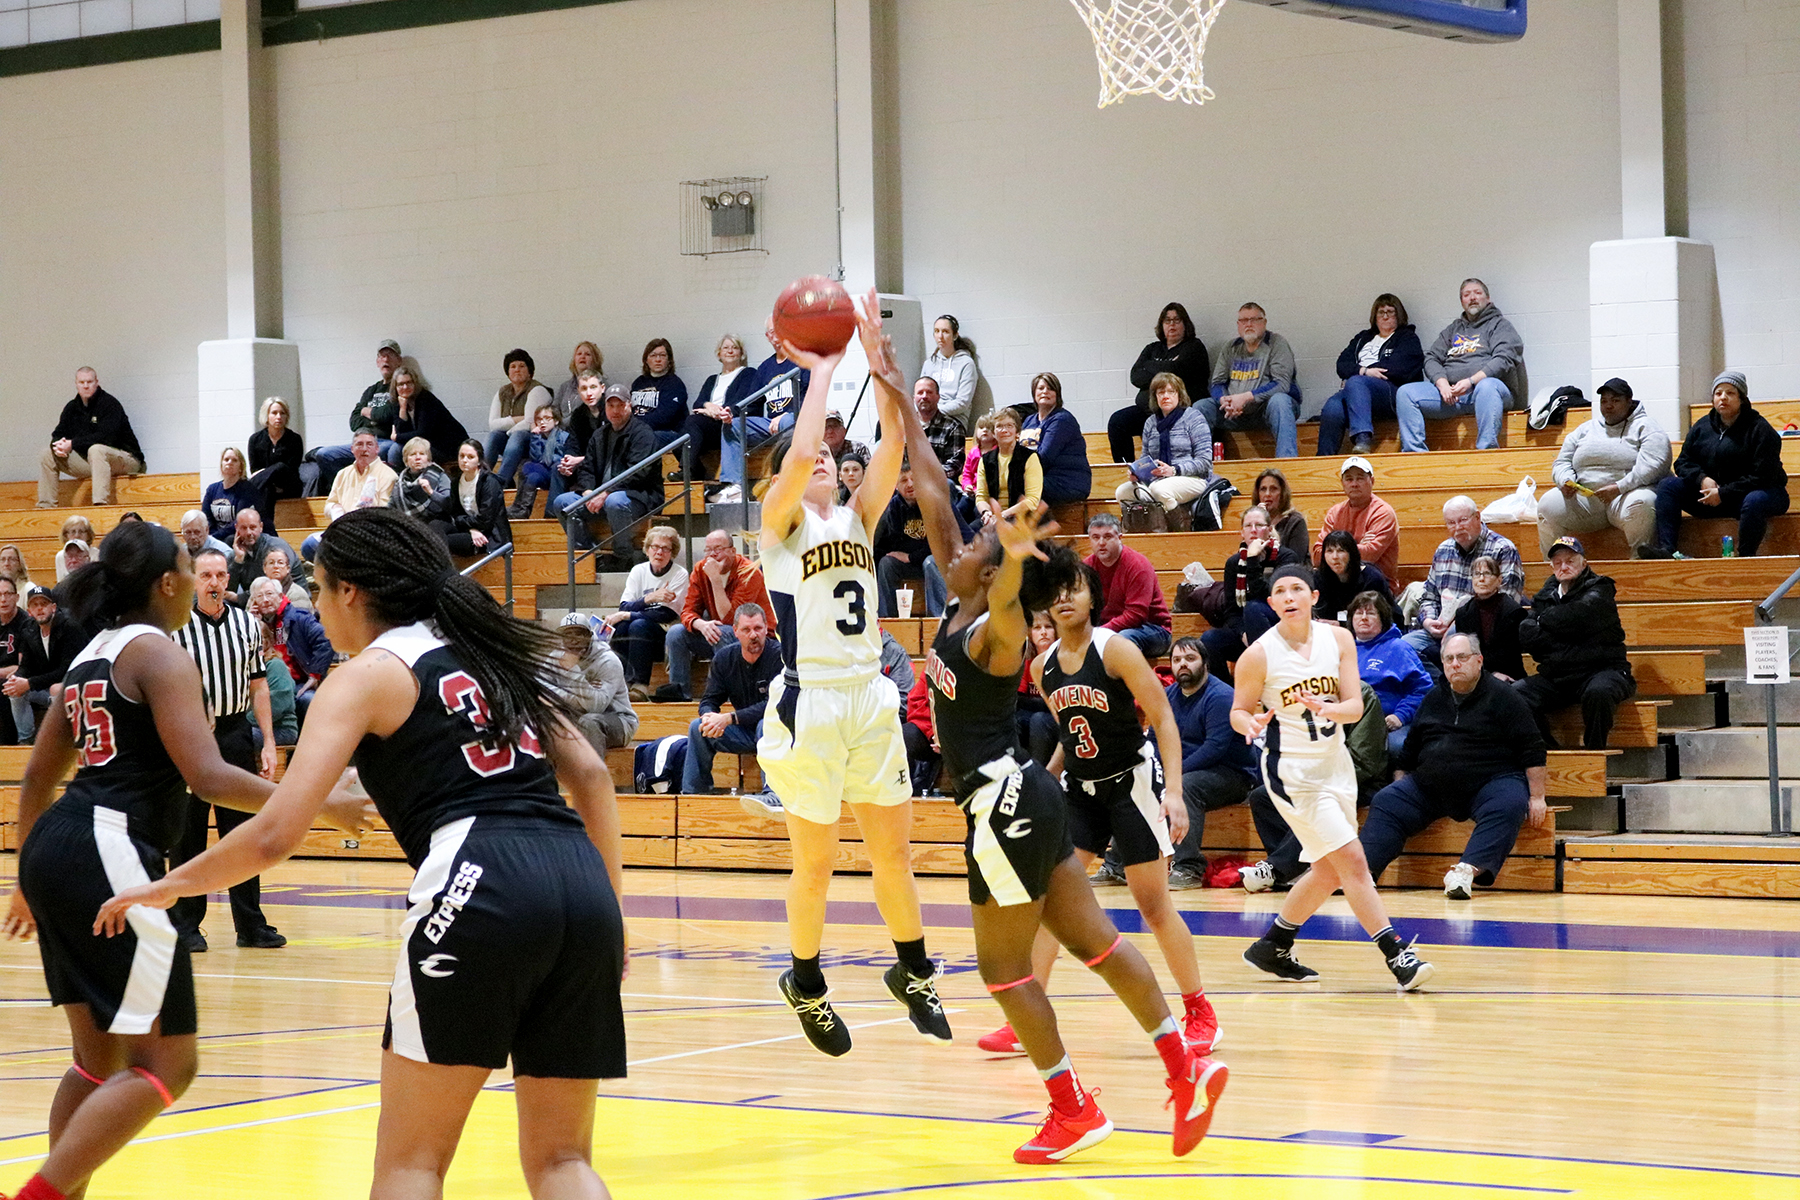 Lady Chargers Begin Season with Victory